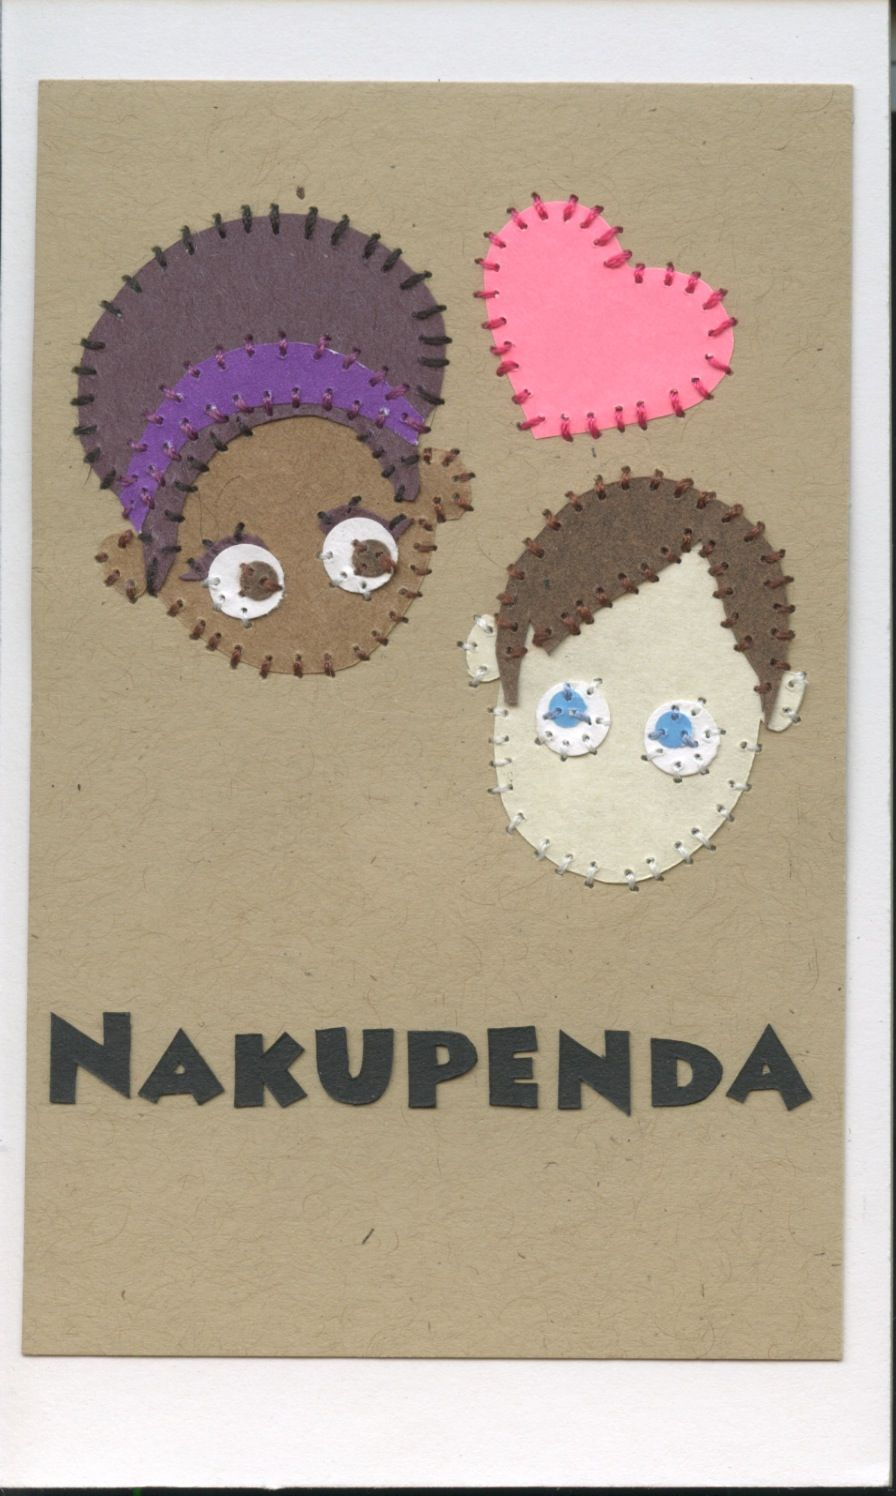 nakupenda (i love you) swahili flashcards 4x6 inches hand-cut and sewn paper collage